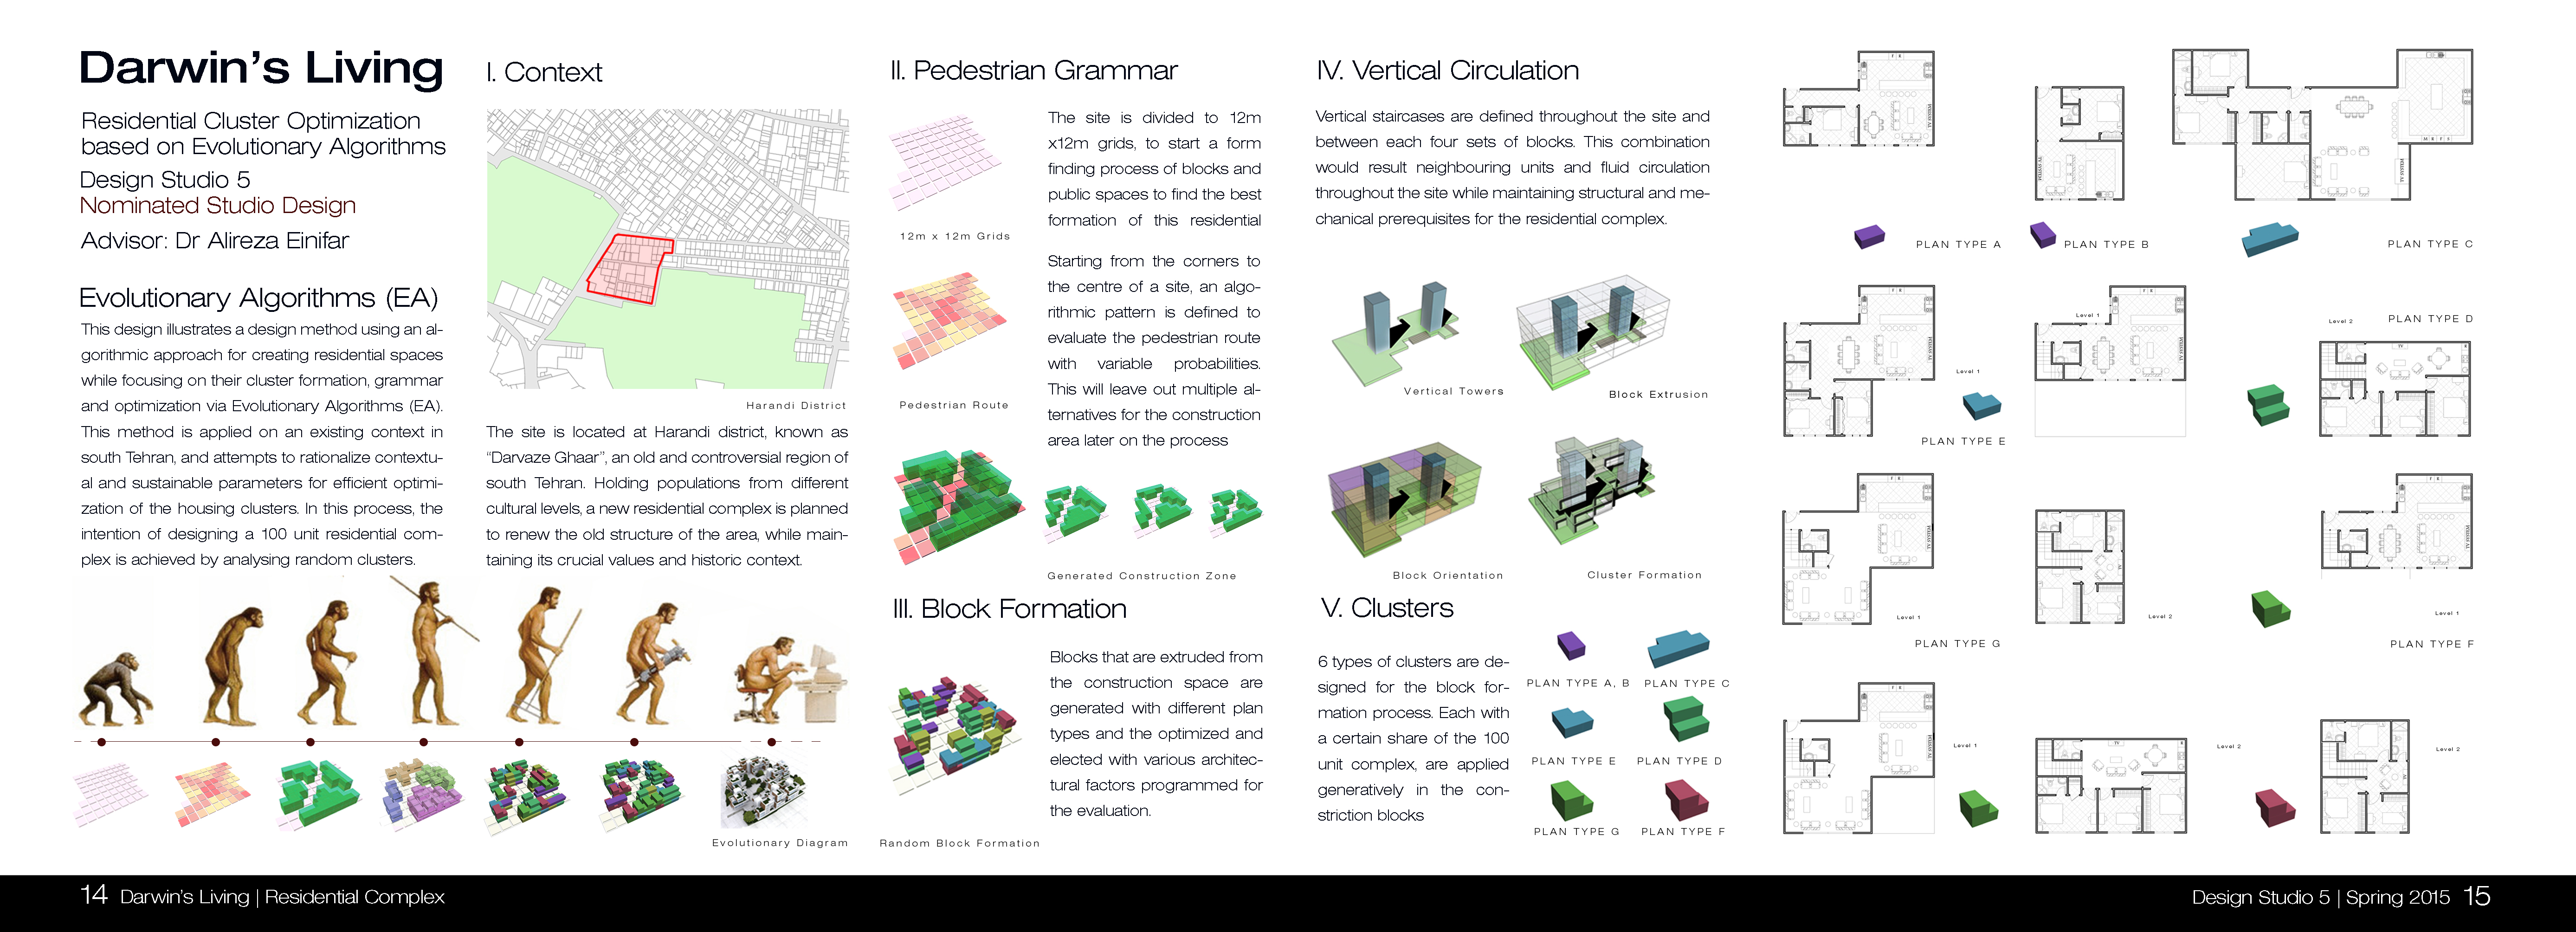 Residential Cluster Optimization via Evolutionary Algorithms